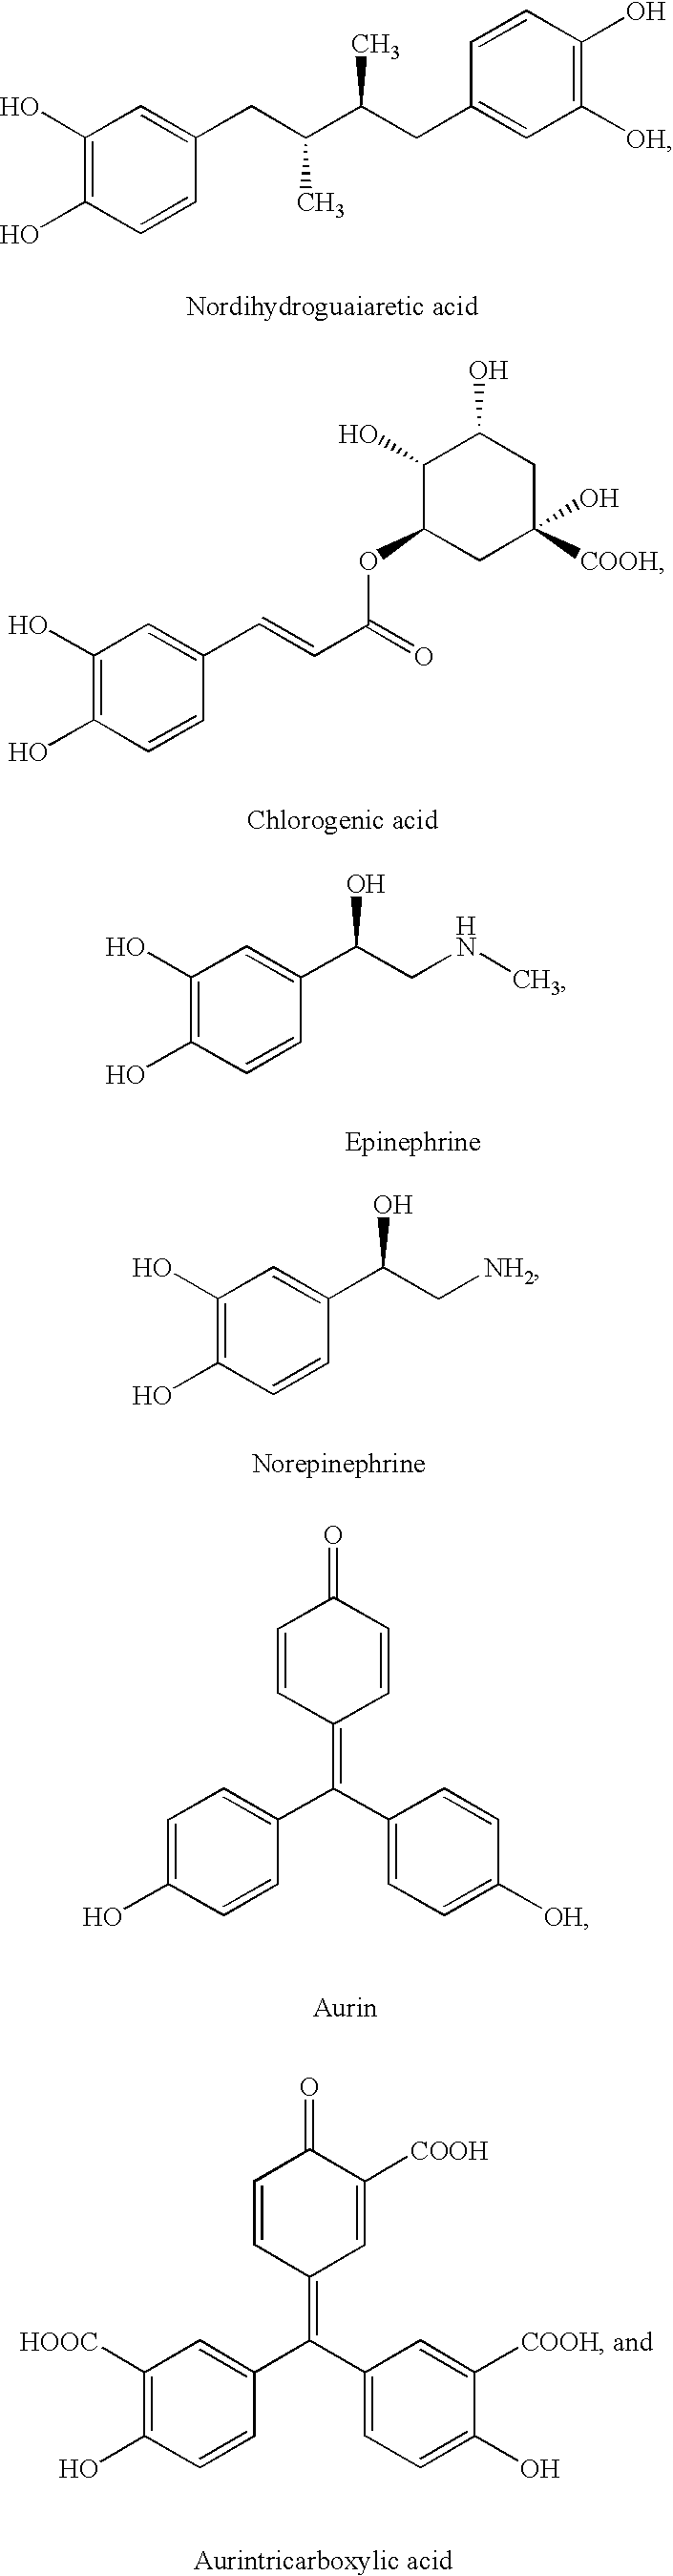 US6524566B2 - Synthetic soil-extract materials and medicaments for